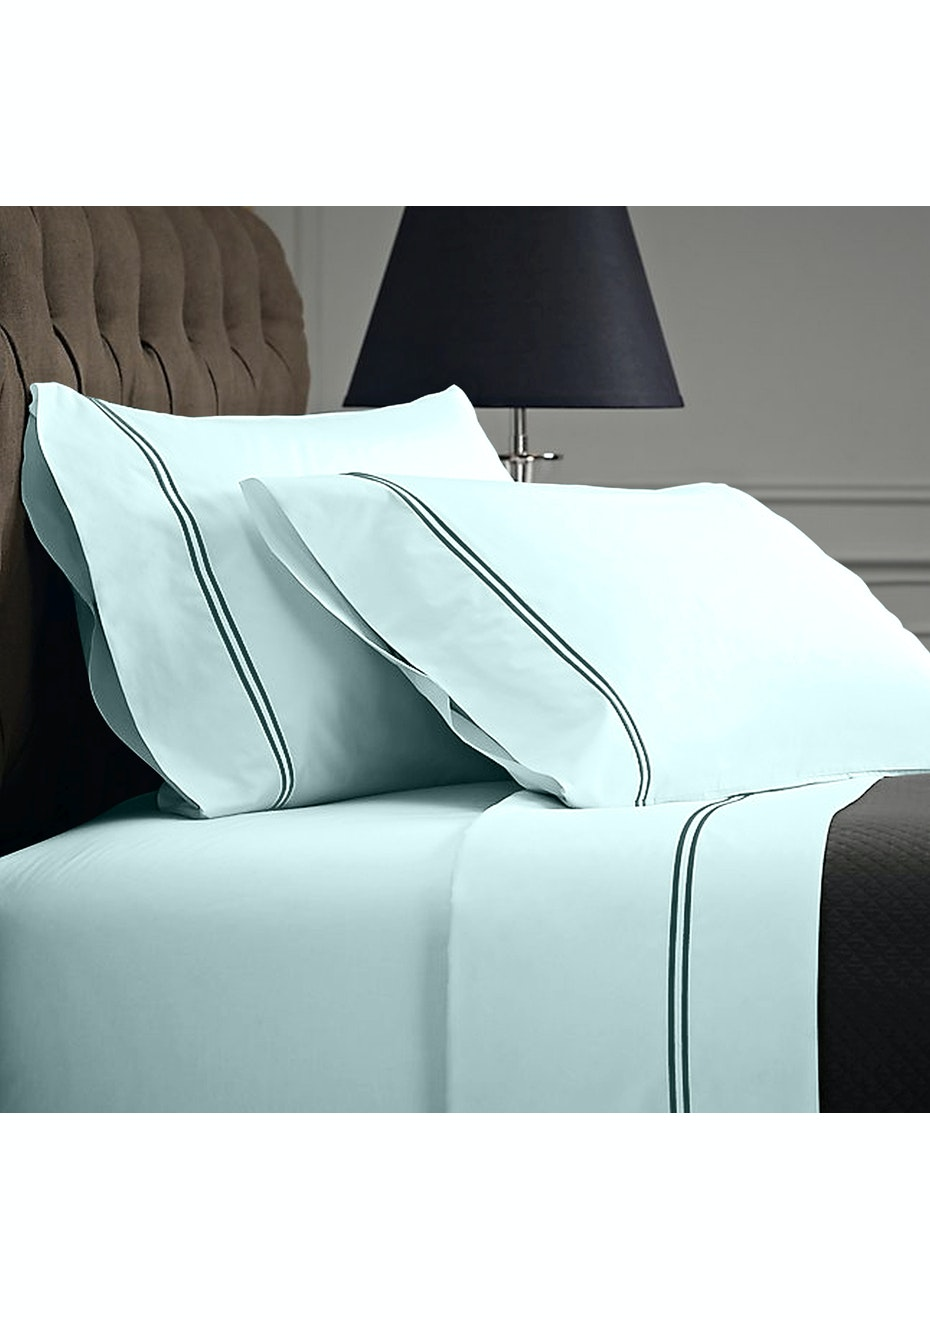 Style & Co 1000 Thread count Egyptian Cotton Hotel Collection Sorrento Sheet sets Queen Duck Egg